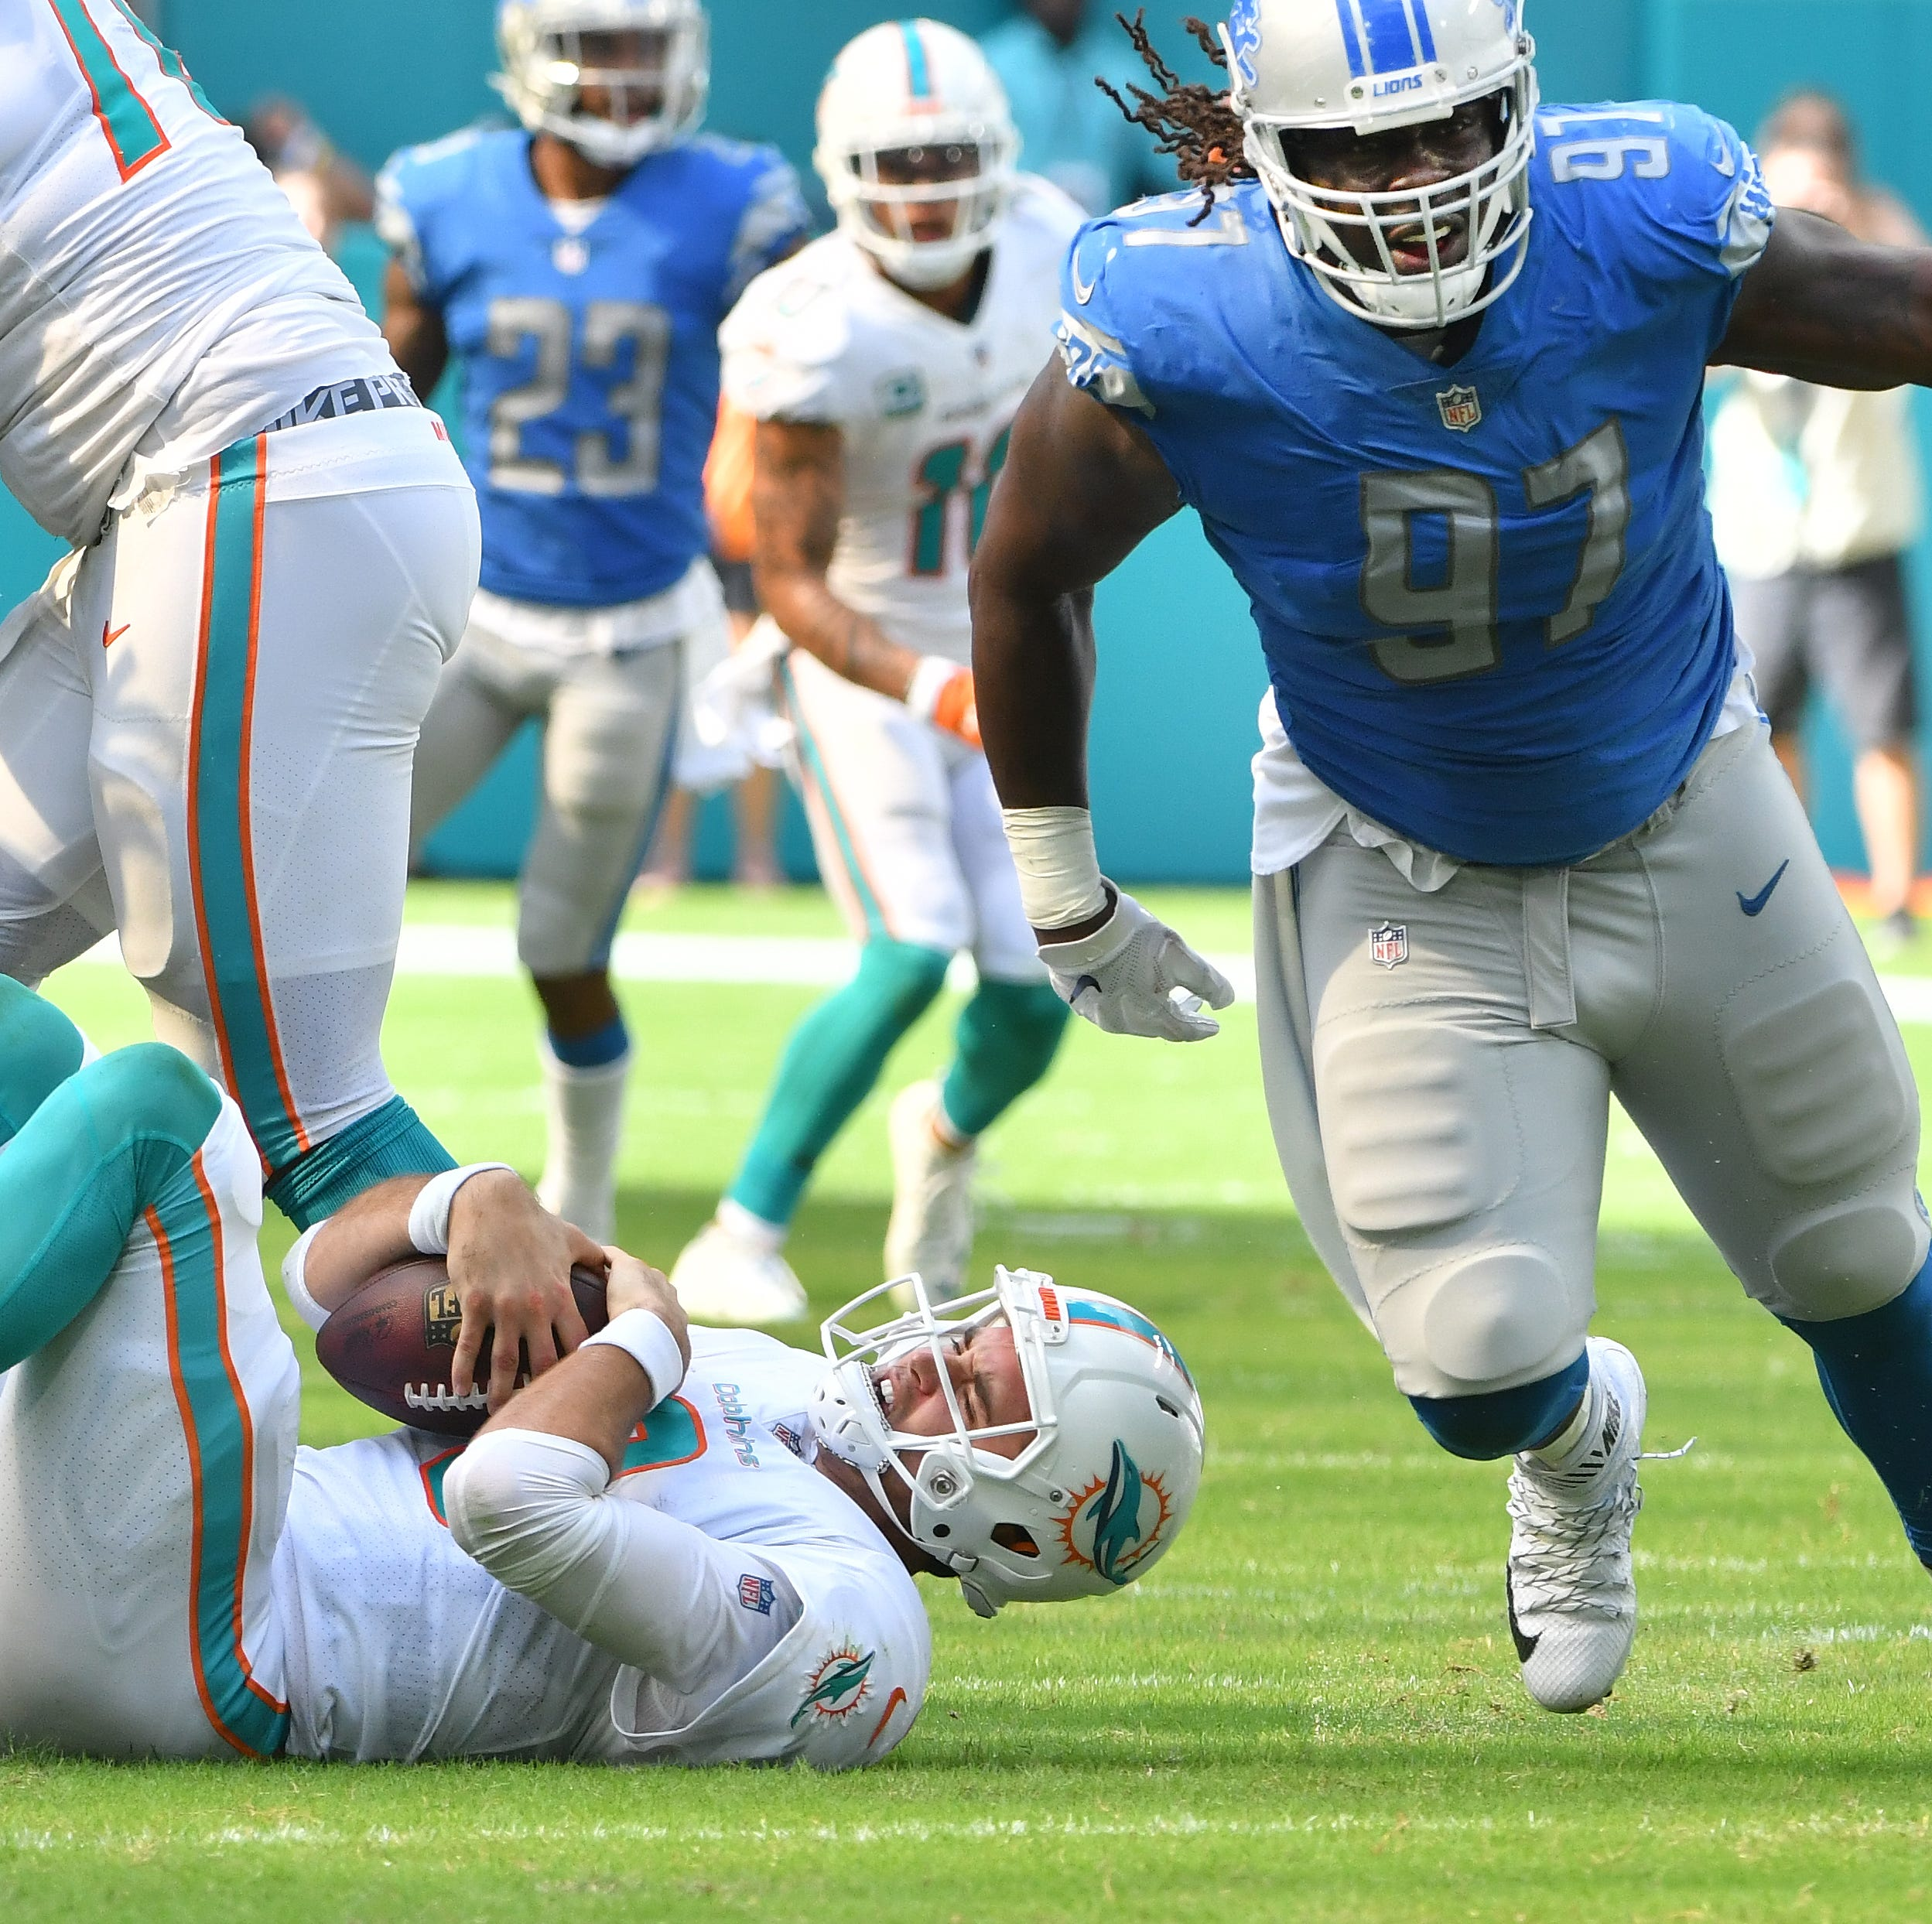 Justin Rogers' Lions grades: Almost all A's, B's in key road victory